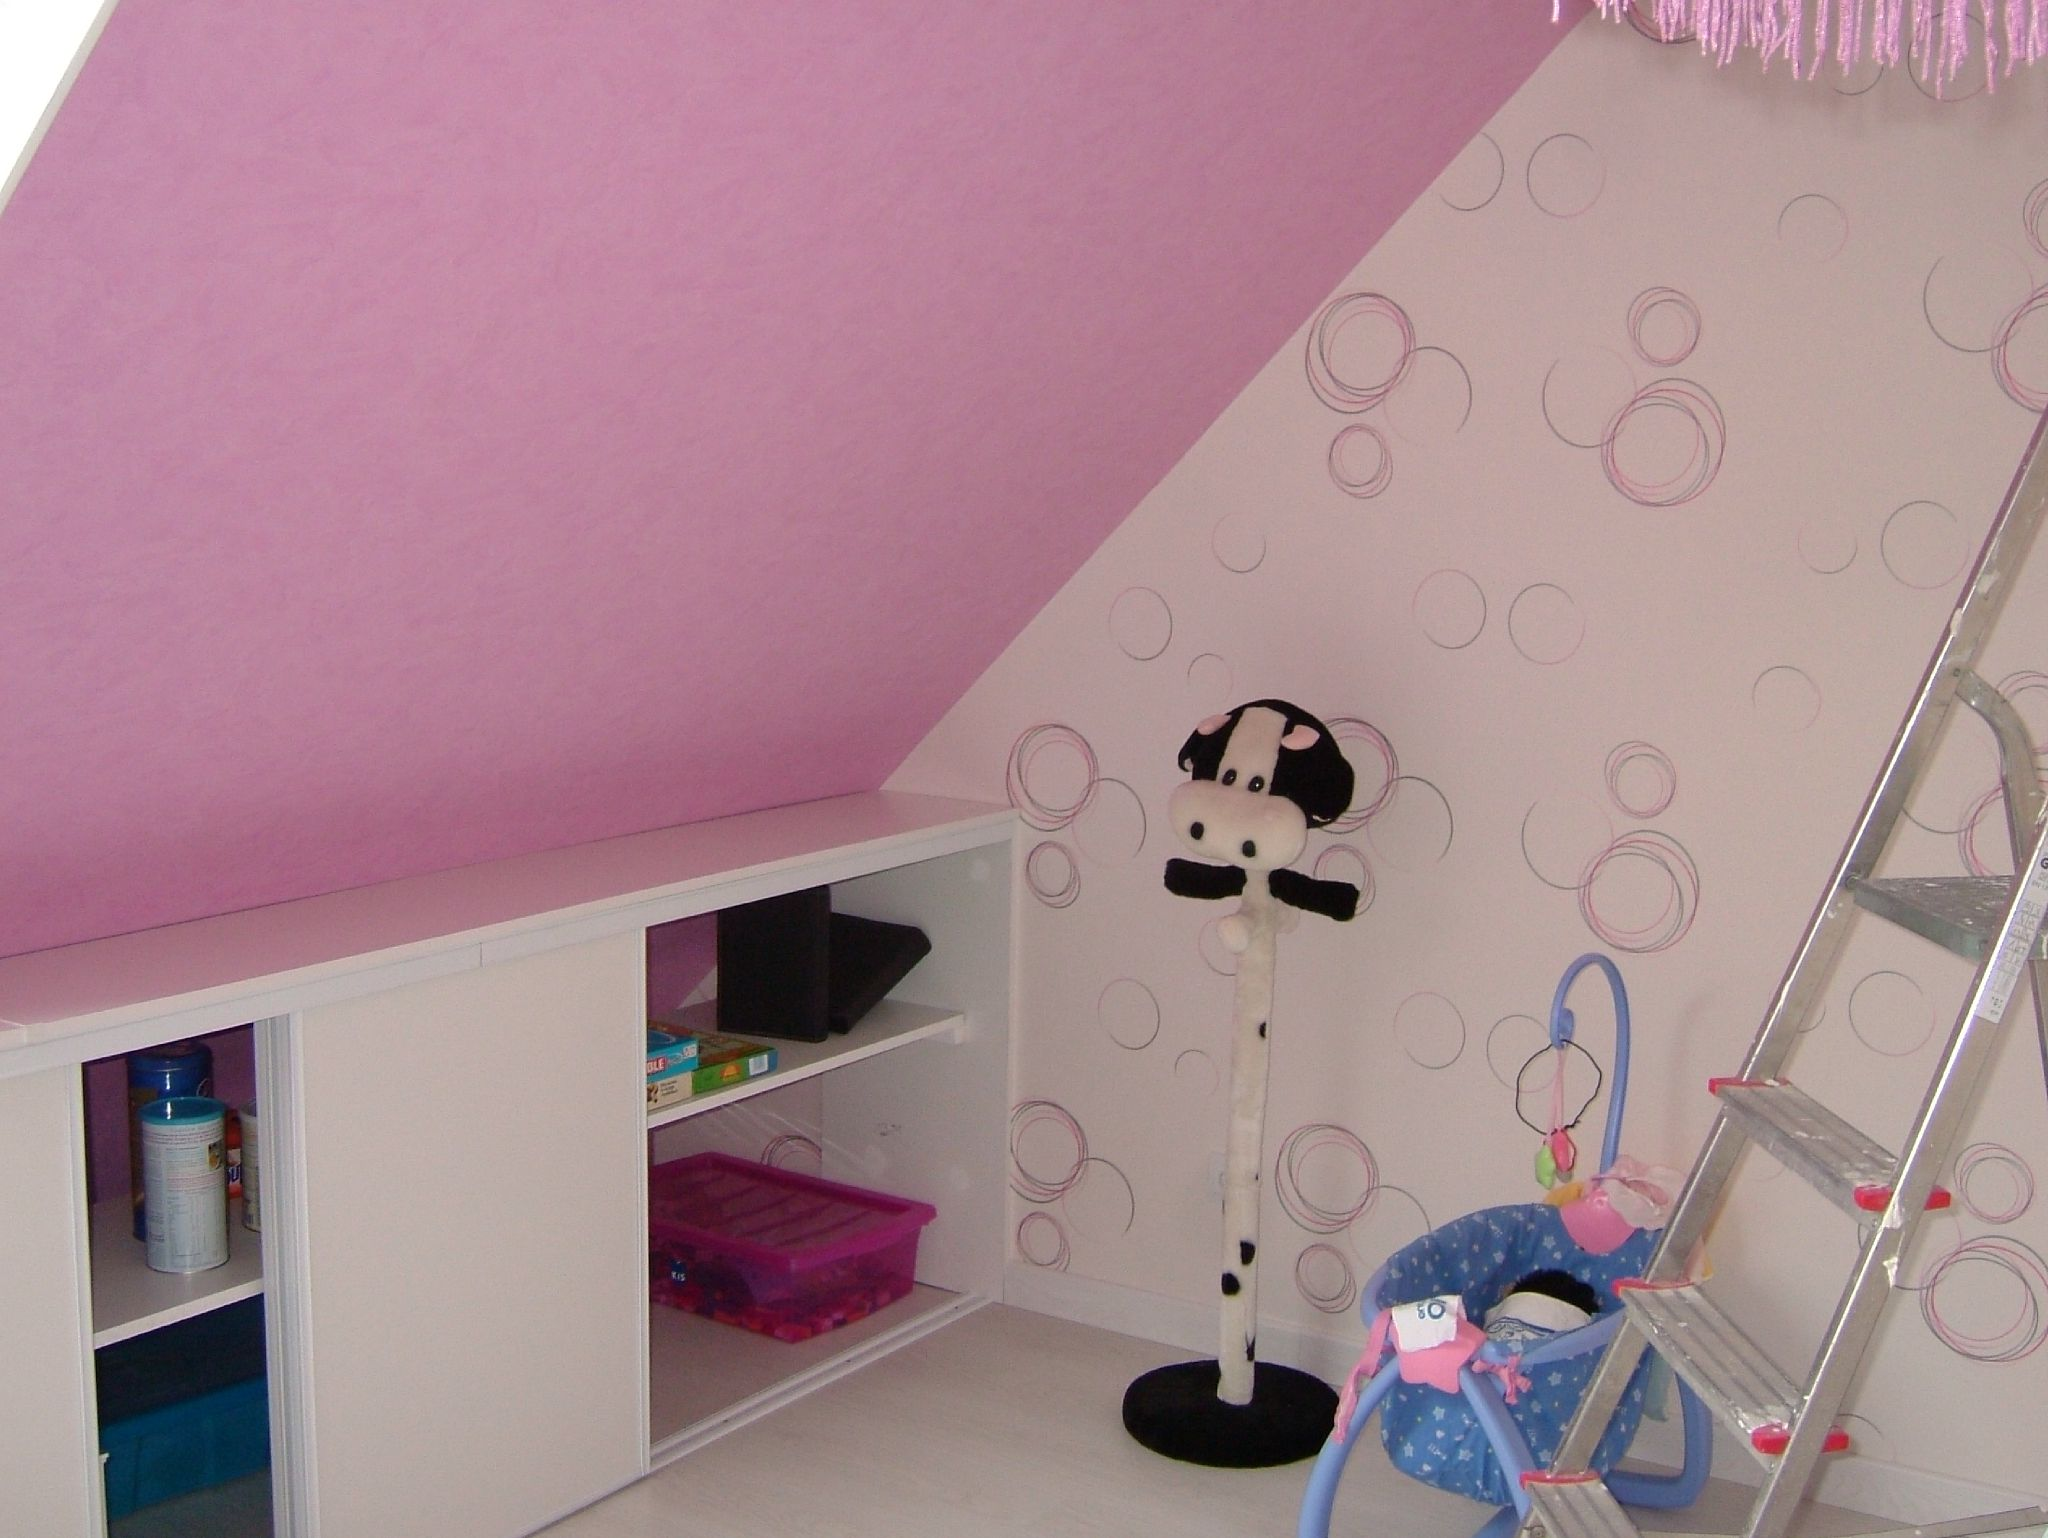 amenagement petite chambre enfant maison design. Black Bedroom Furniture Sets. Home Design Ideas